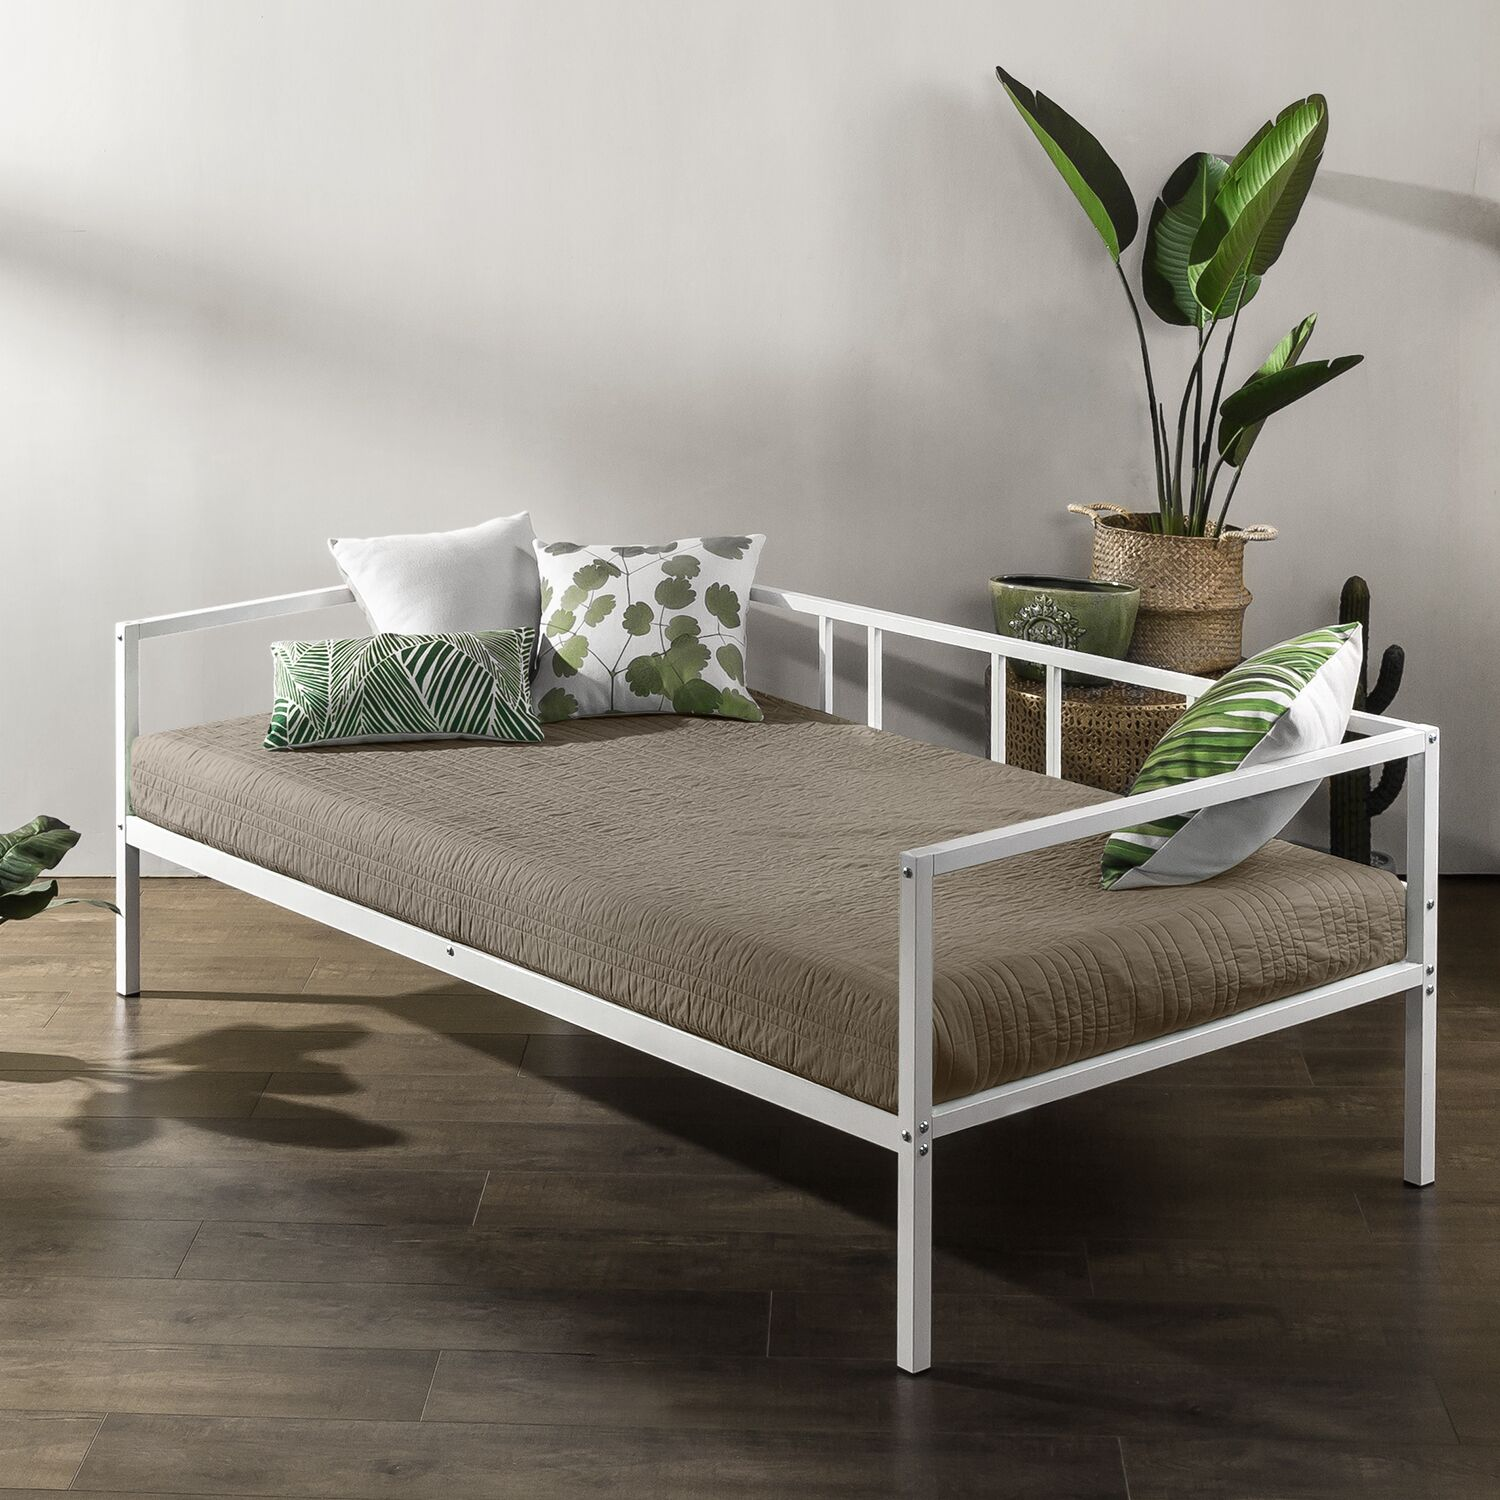 Havens Twin Daybed Frame